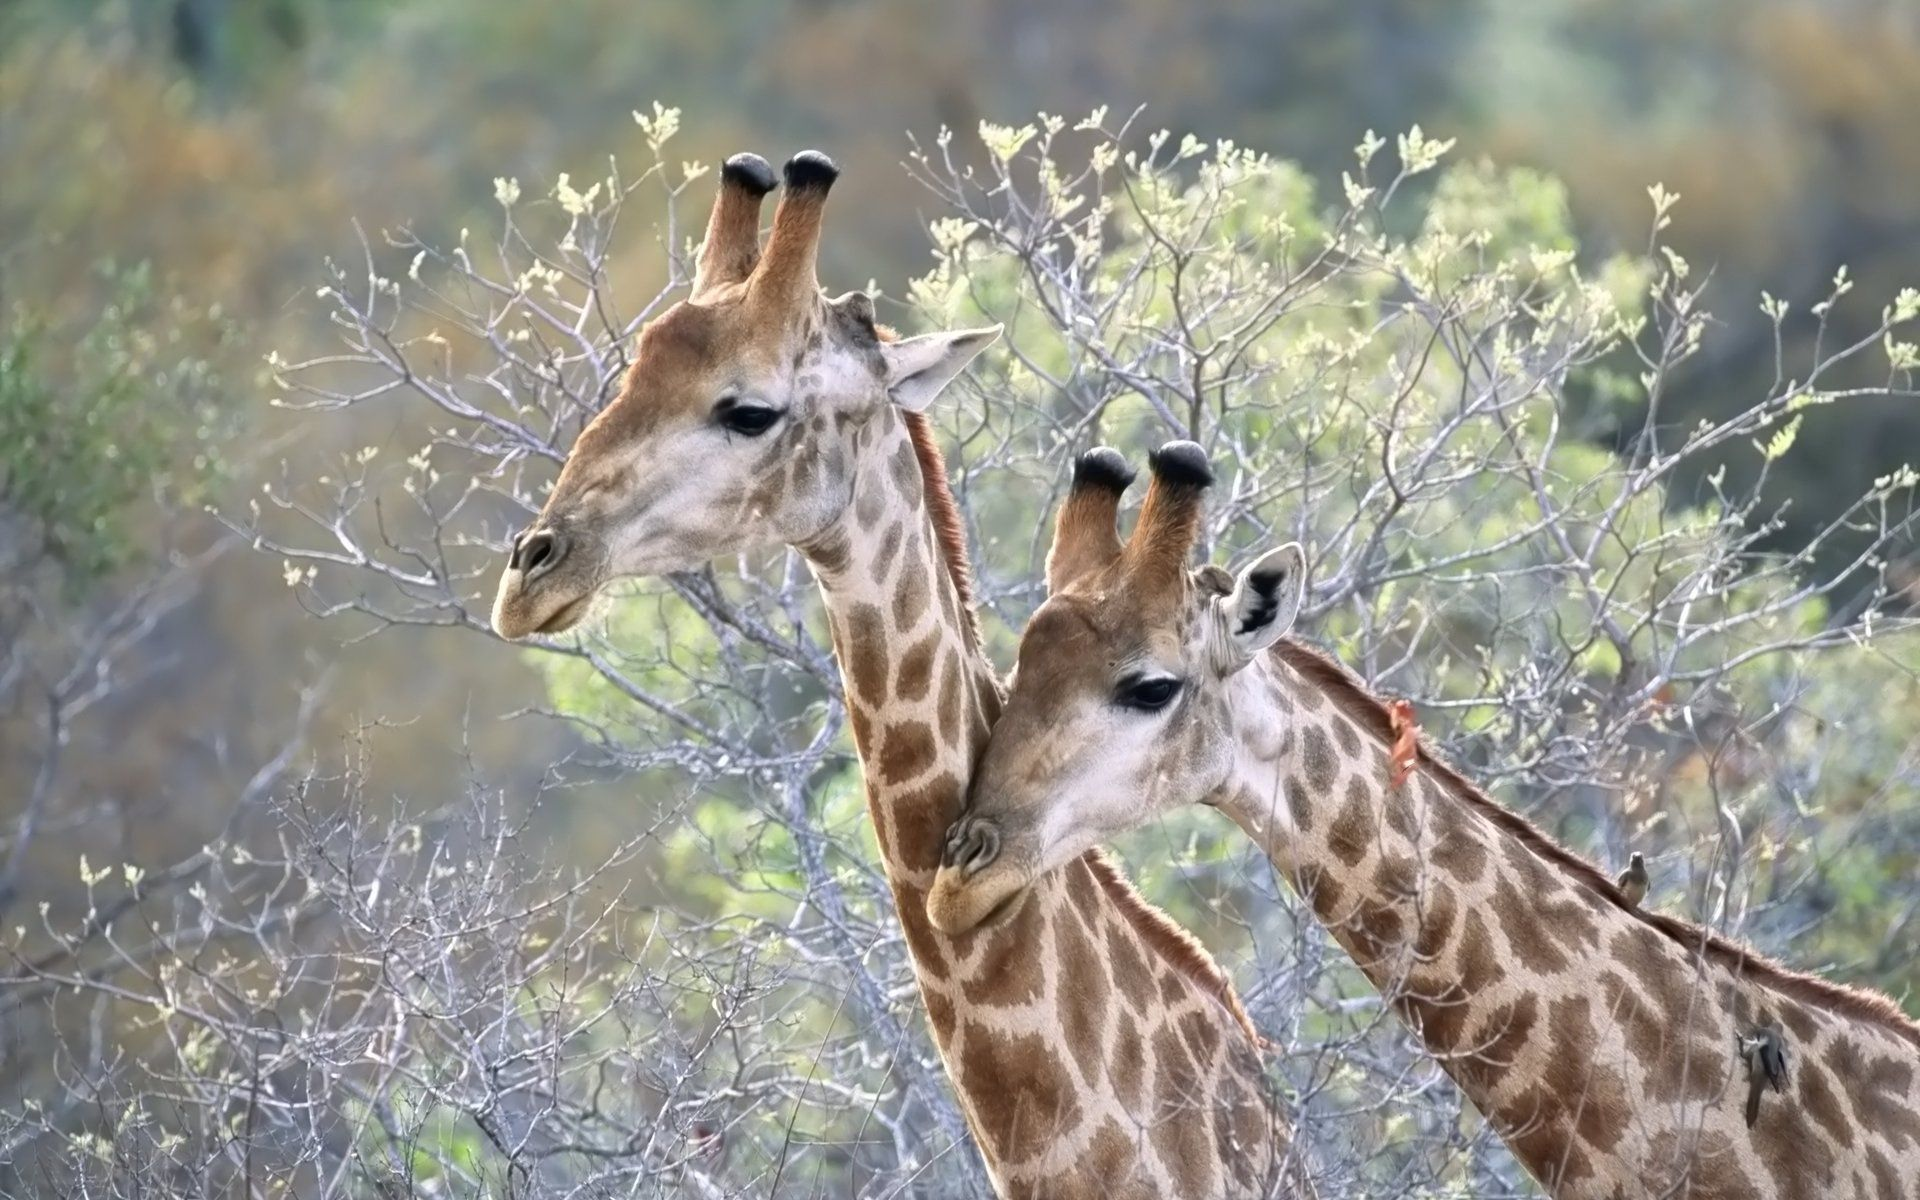 68942 download wallpaper Animals, Couple, Pair, Grass, Trees, Giraffes screensavers and pictures for free